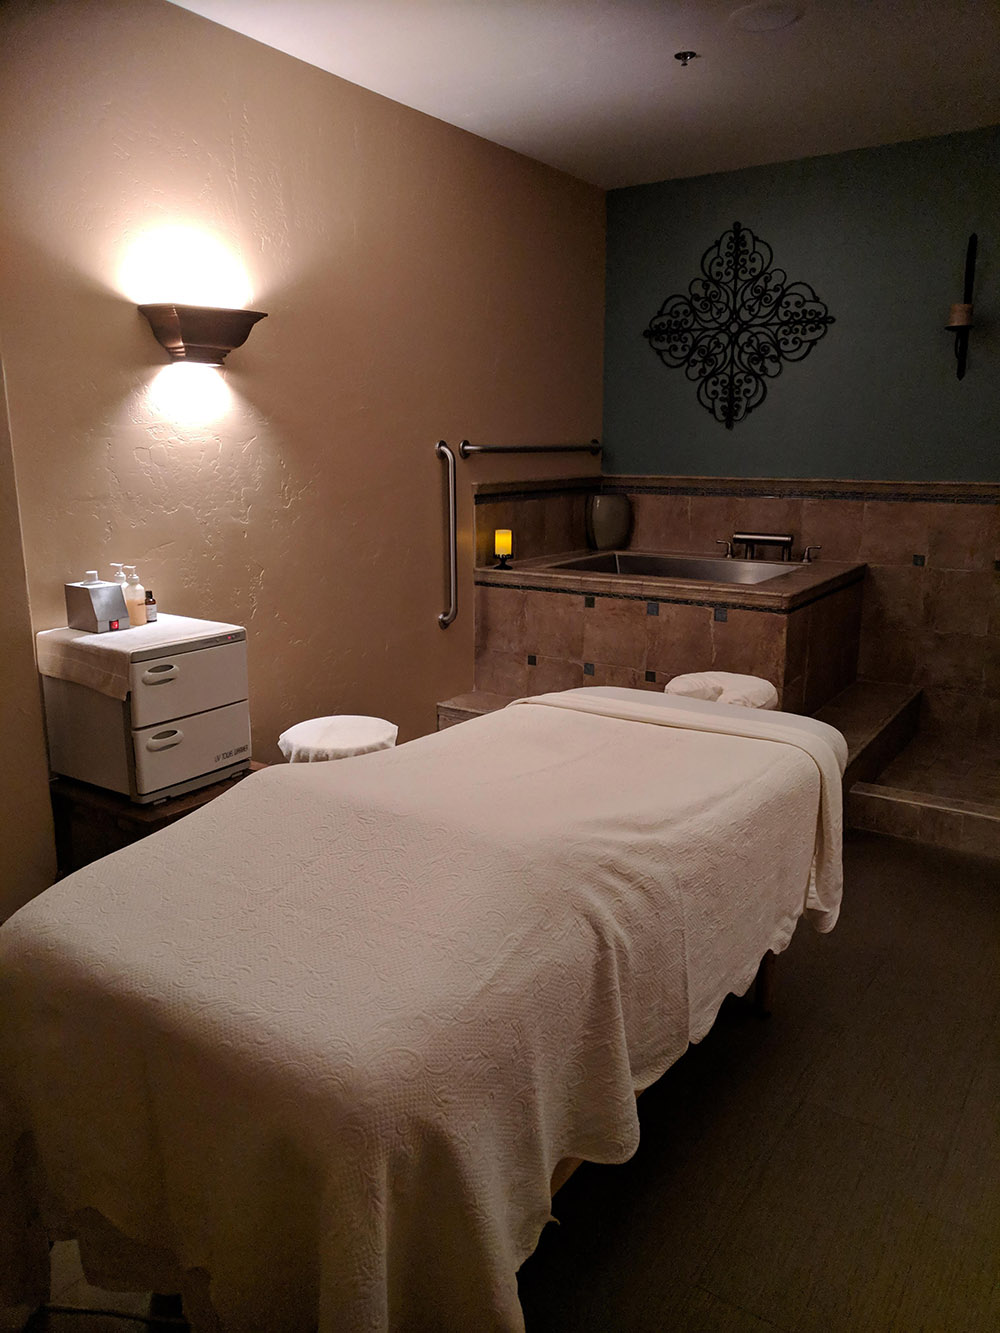 A massage treatment room in soft earth tones equipped with a soaking tub.